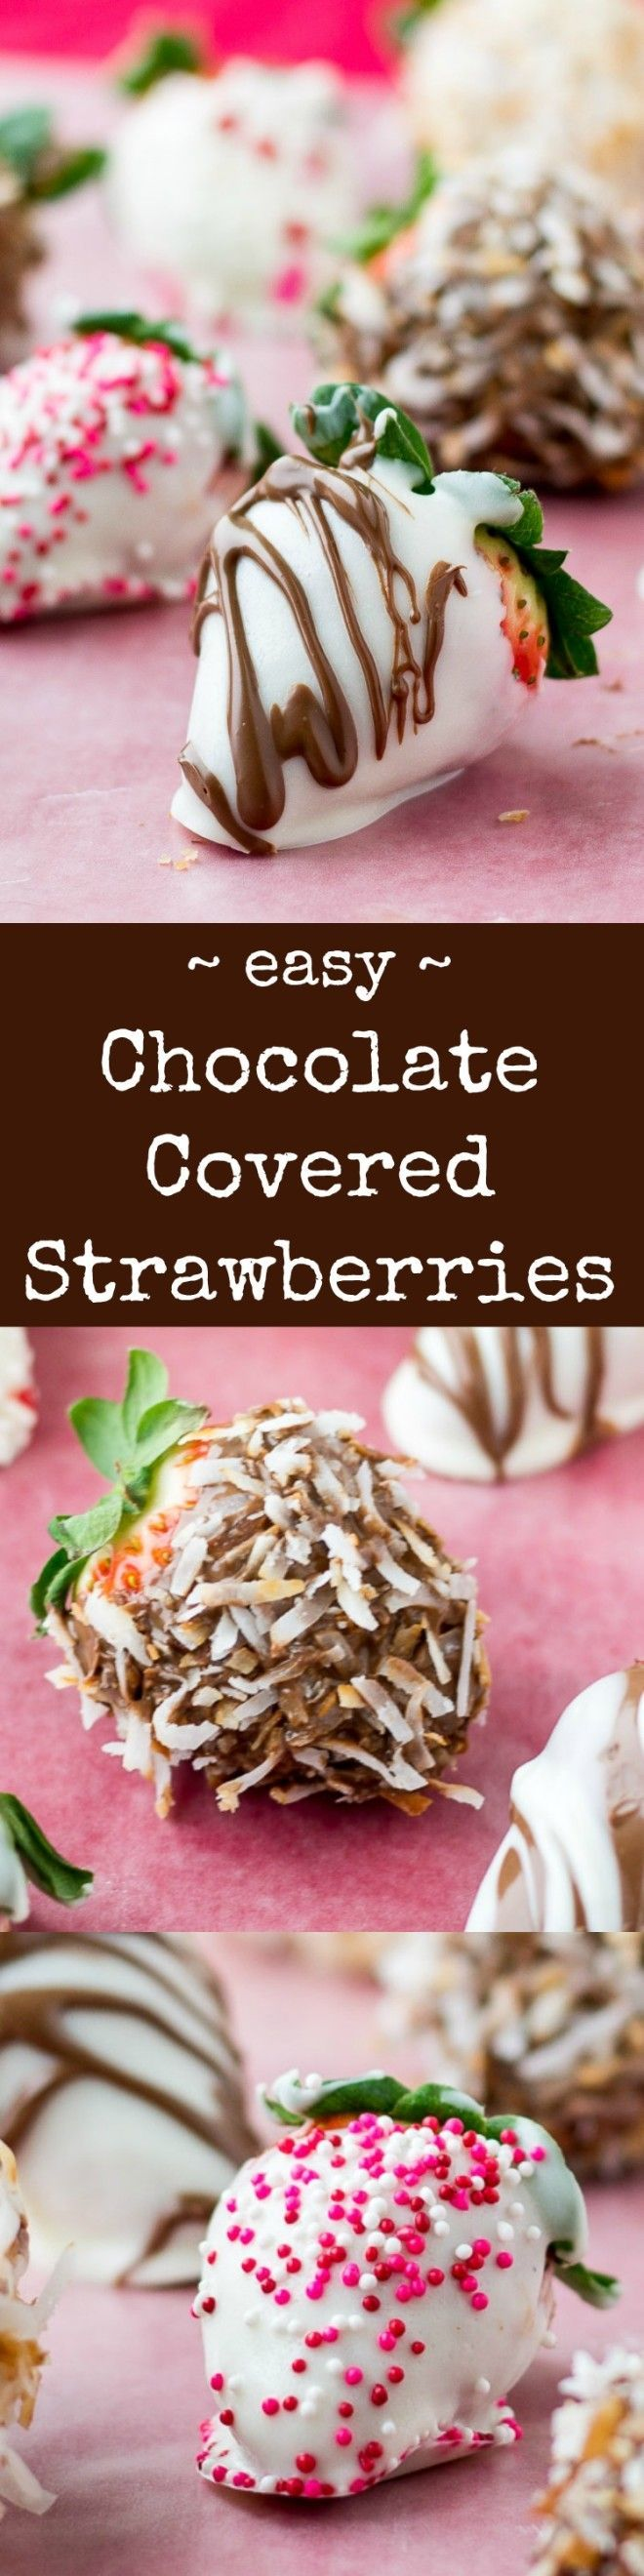 Learn how to make chocolate covered strawberries with the best ingredients and the most creative toppings. These are superior to store-bought in every way!